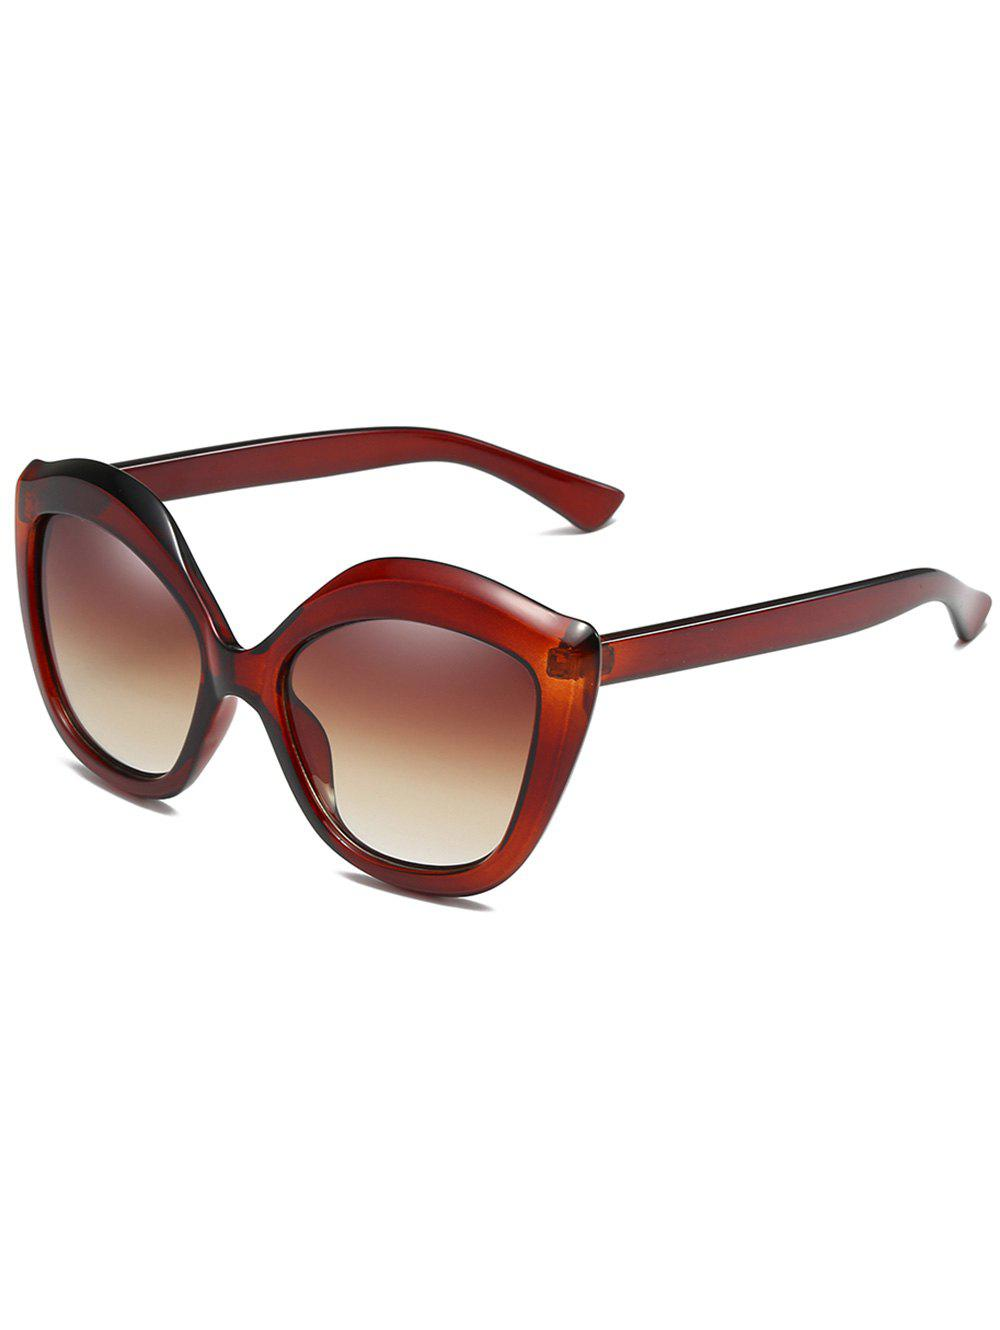 Anti Fatigue Full Frame Oversized Sunglasses - BROWN BEAR